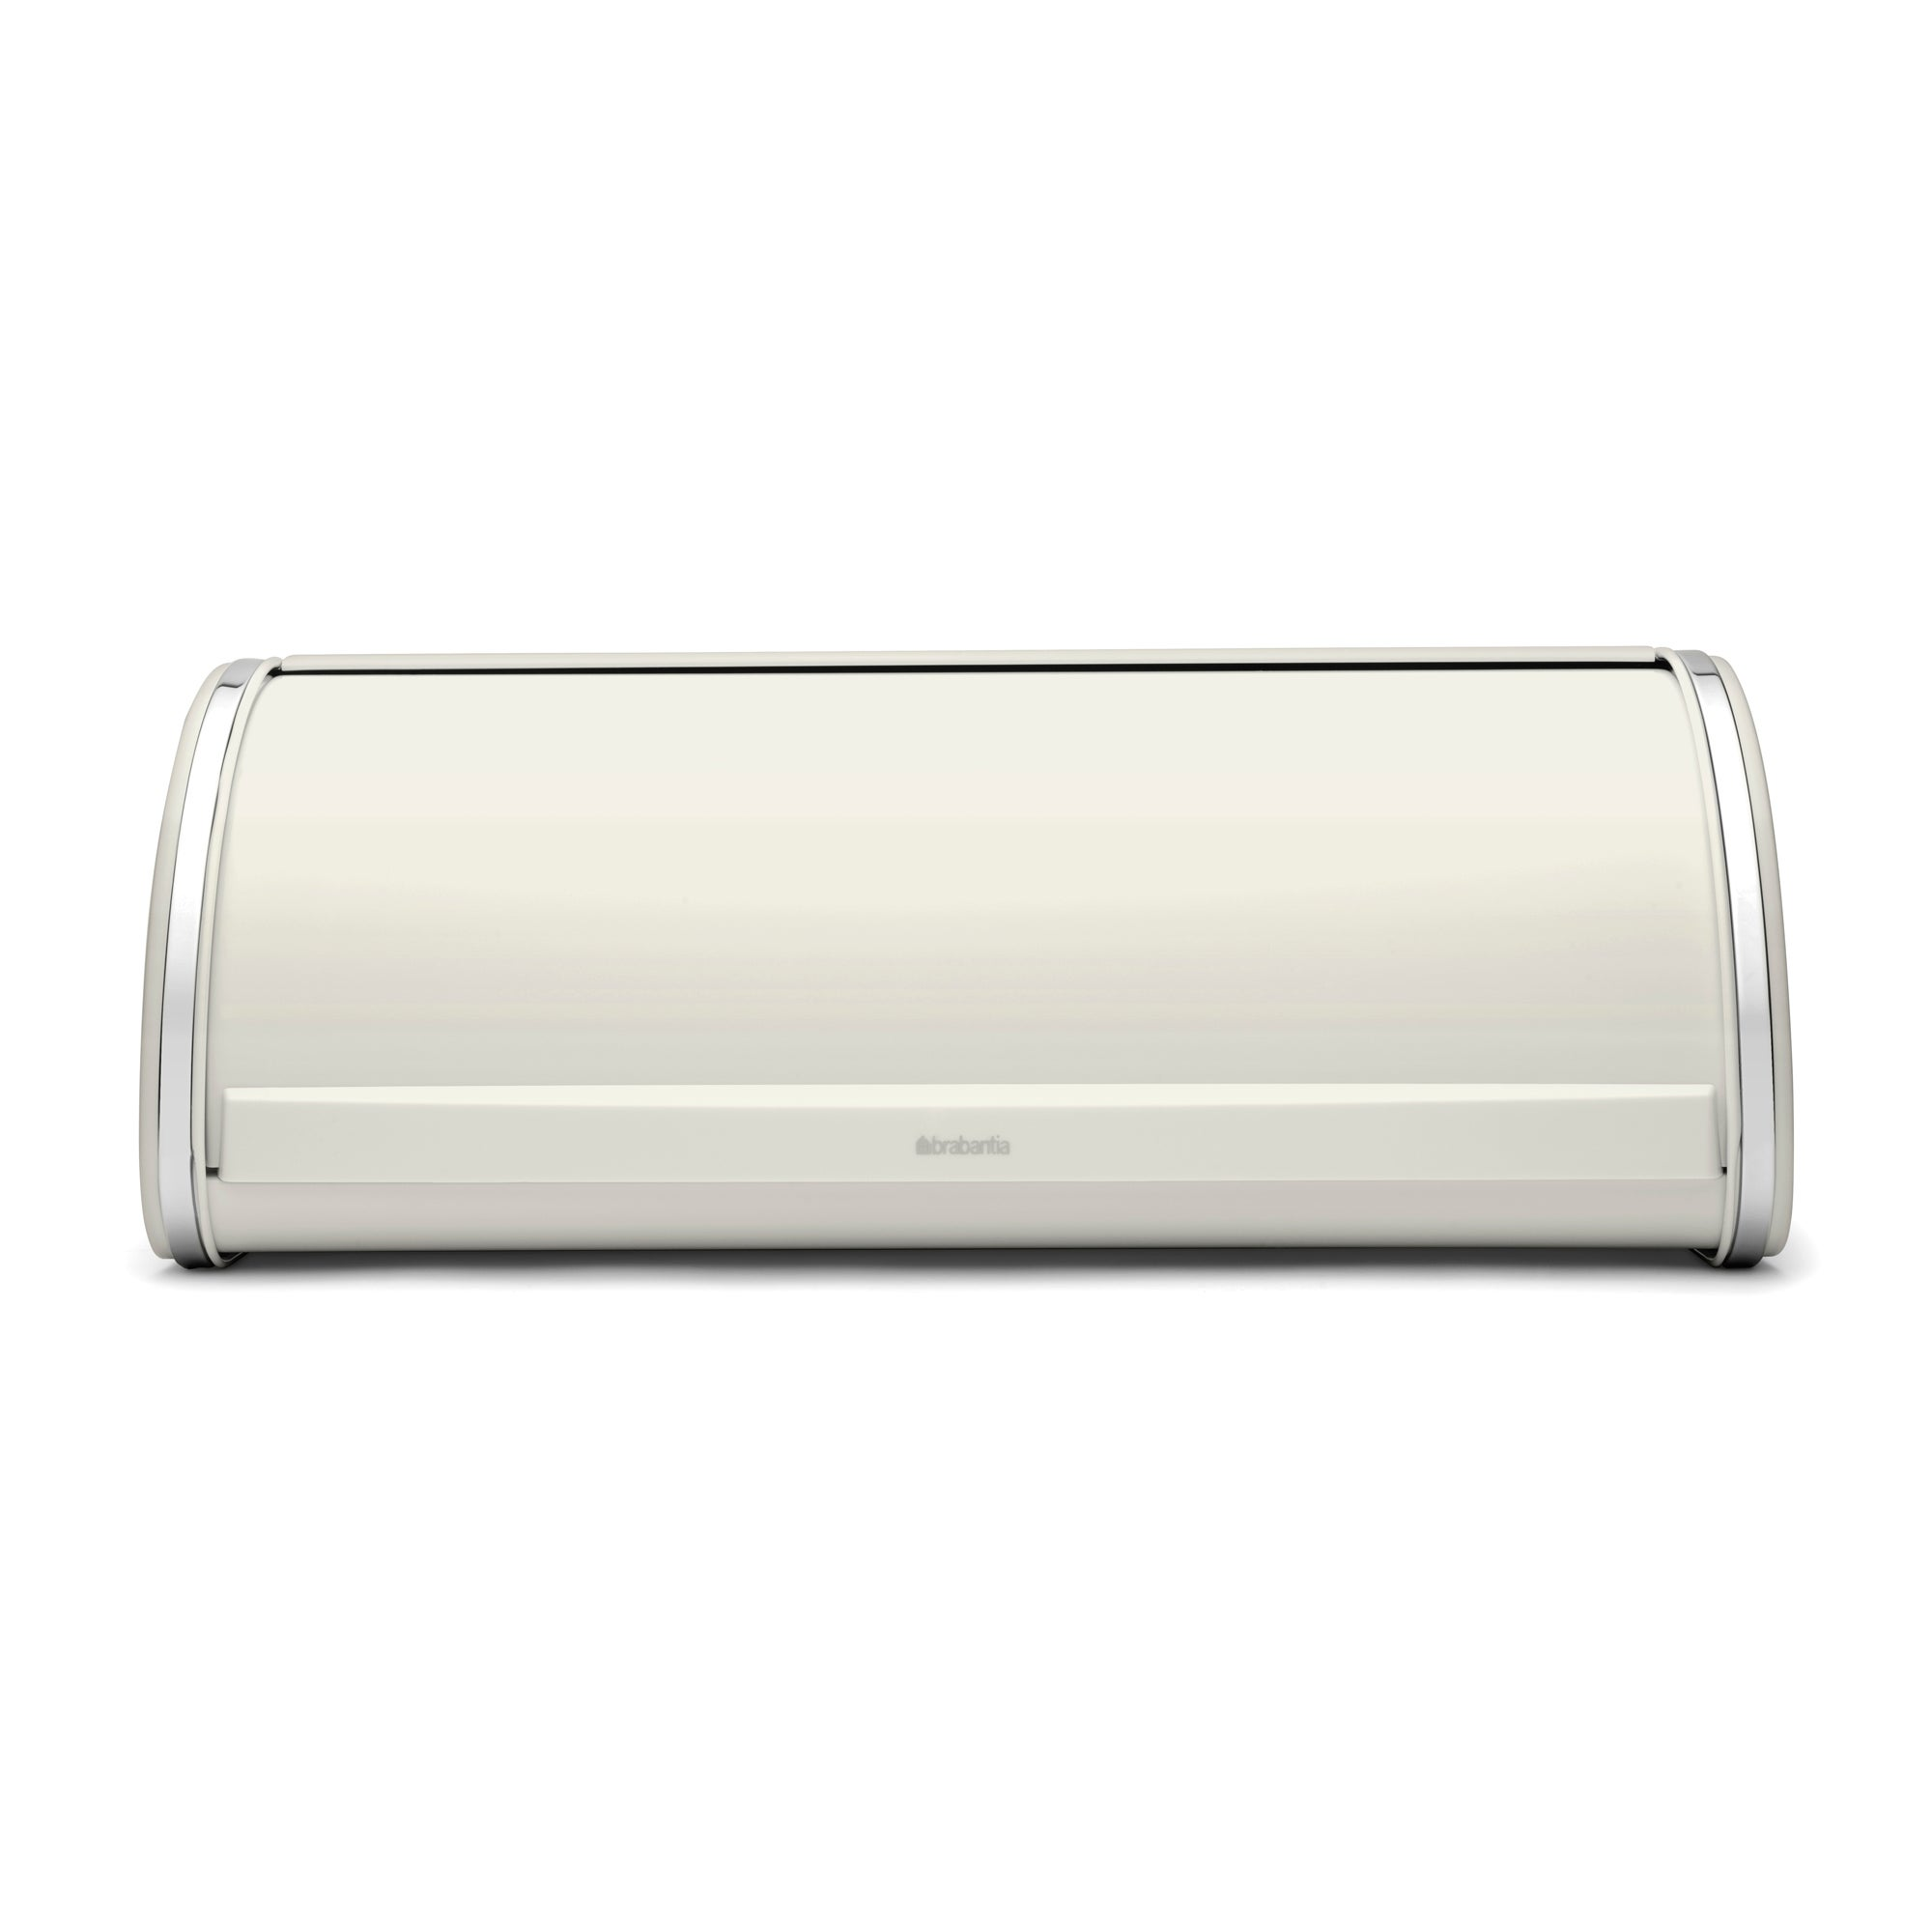 Brabantia White Roll Top Bread Bin